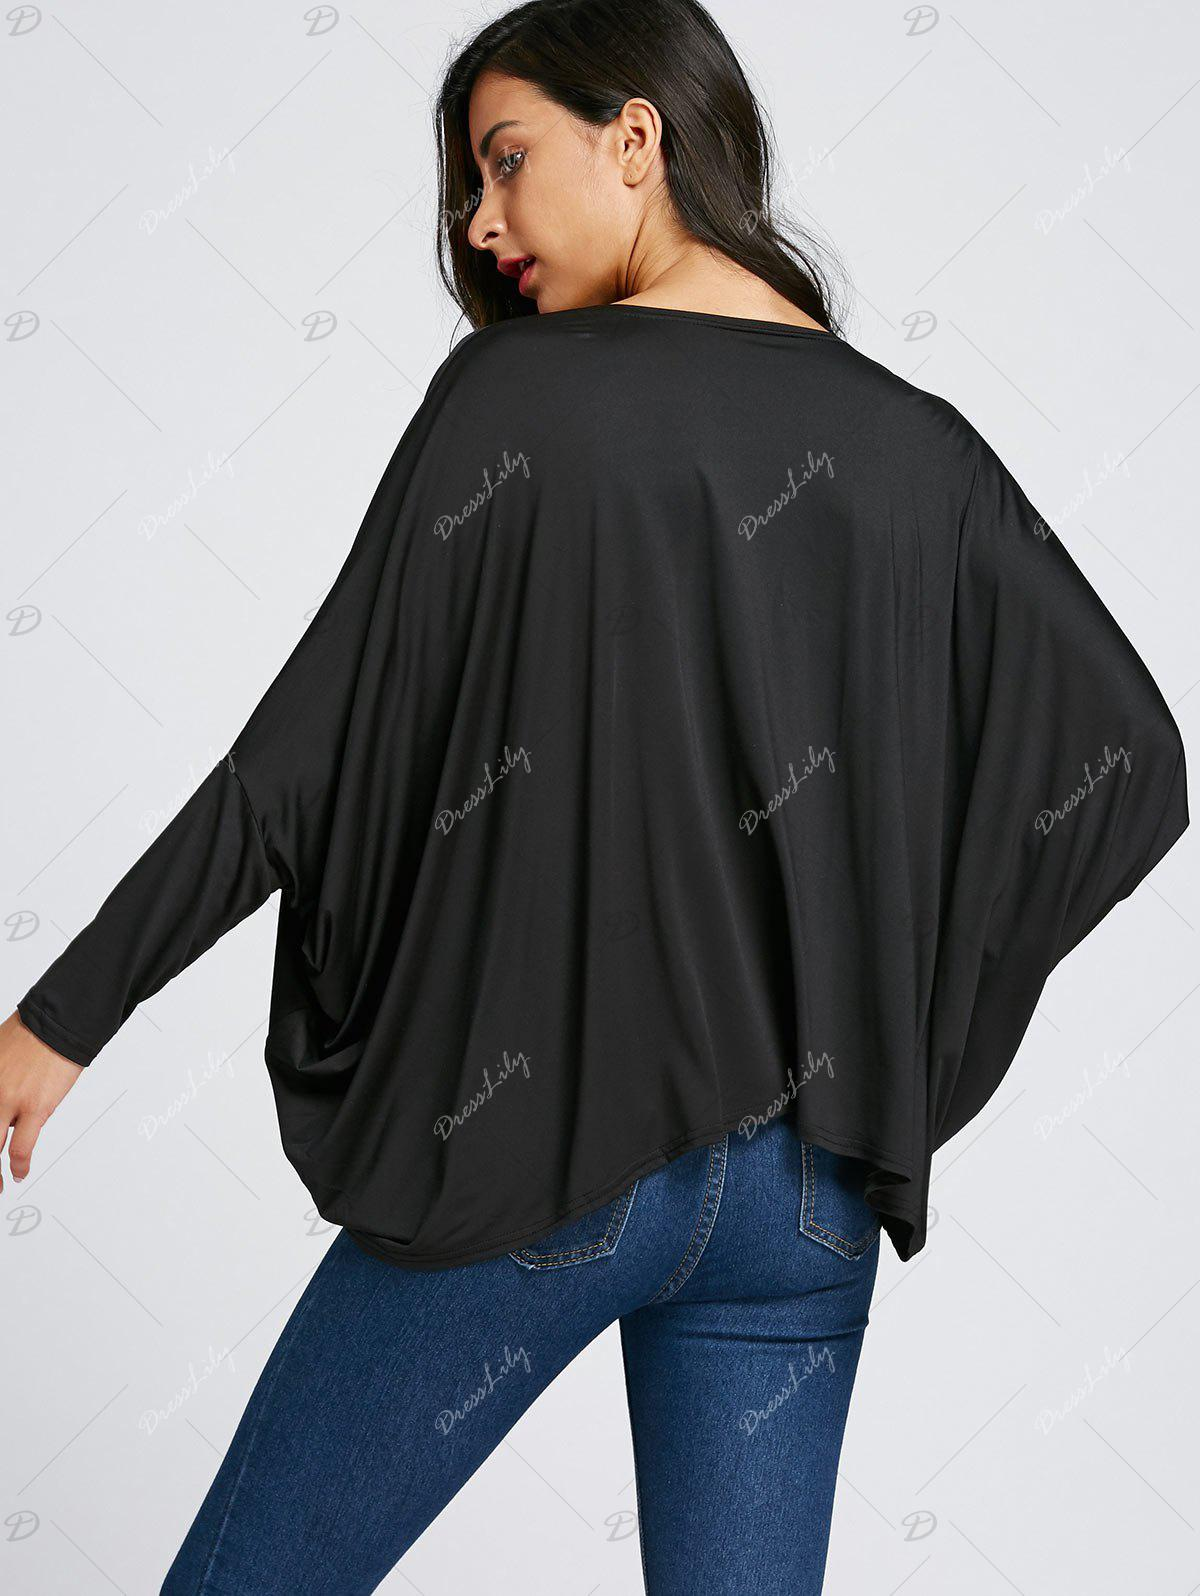 Twist Front Batwing Sleeve Midriff-baring Blouse - BLACK S